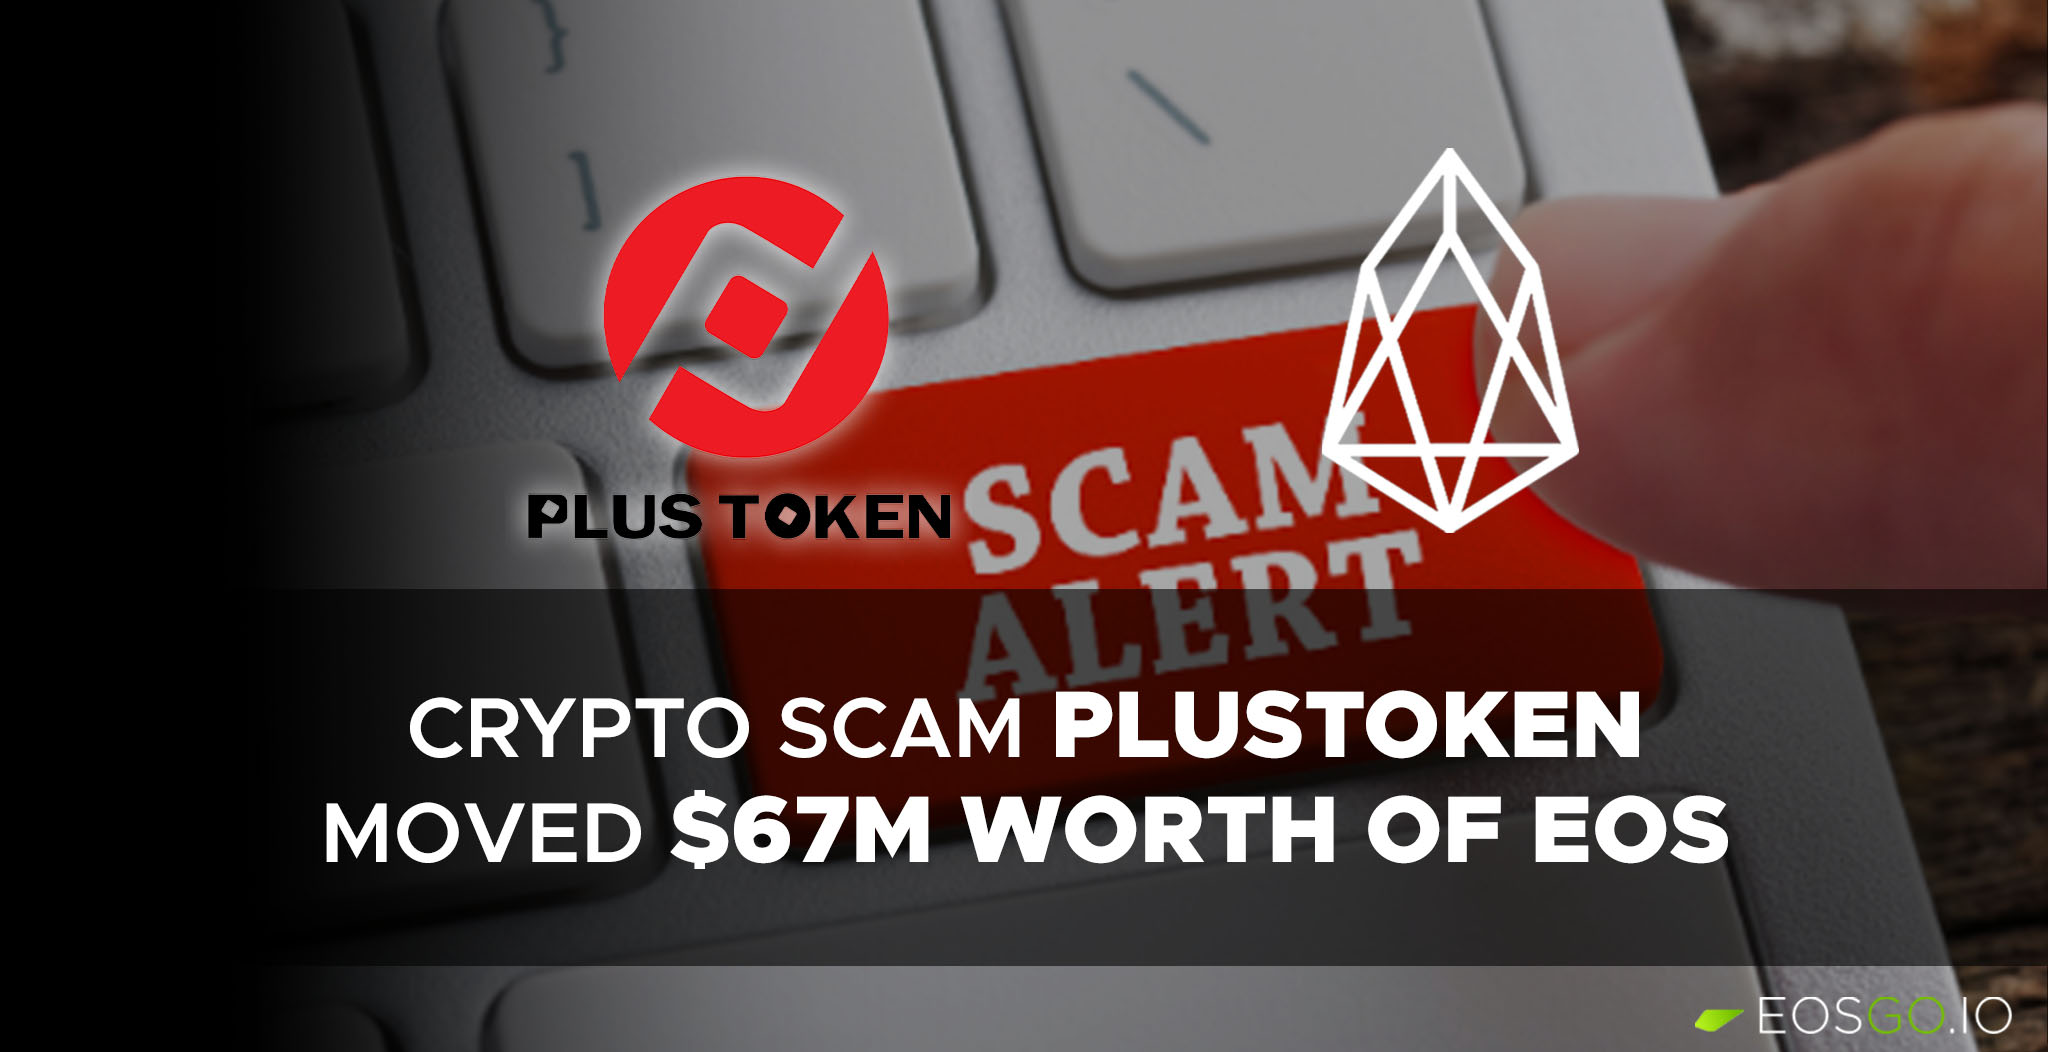 plustoken-moved-67m-worth-of-eos